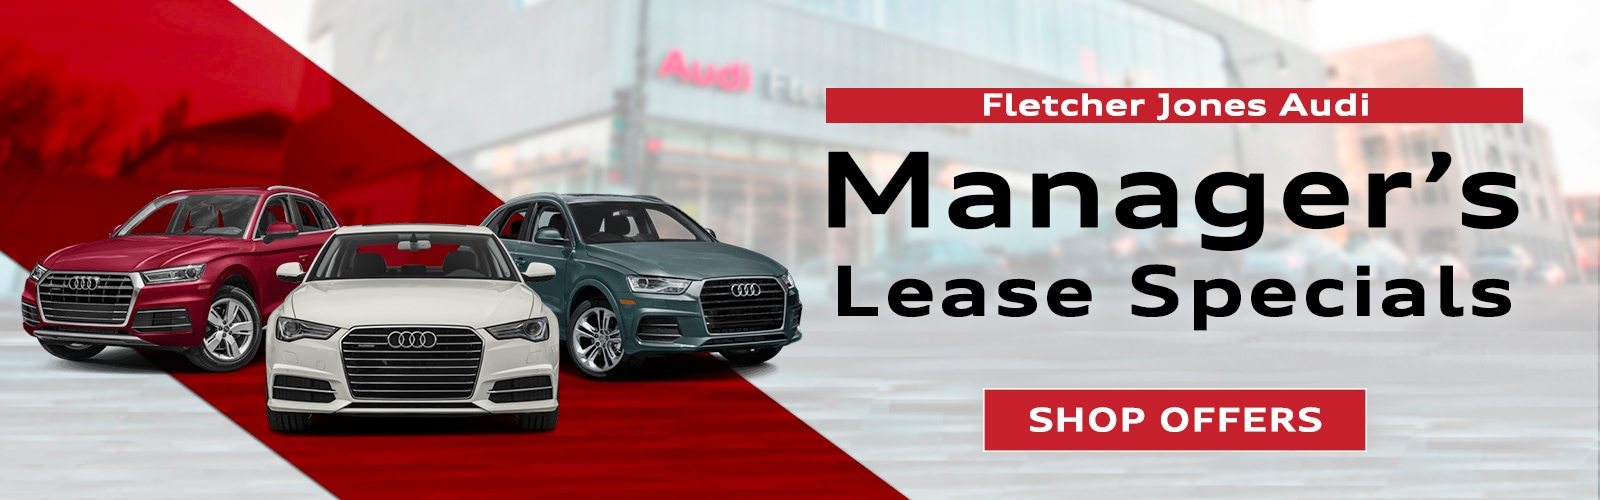 New & Used Audi Dealership in Chicago, IL | Fletcher Jones Audi